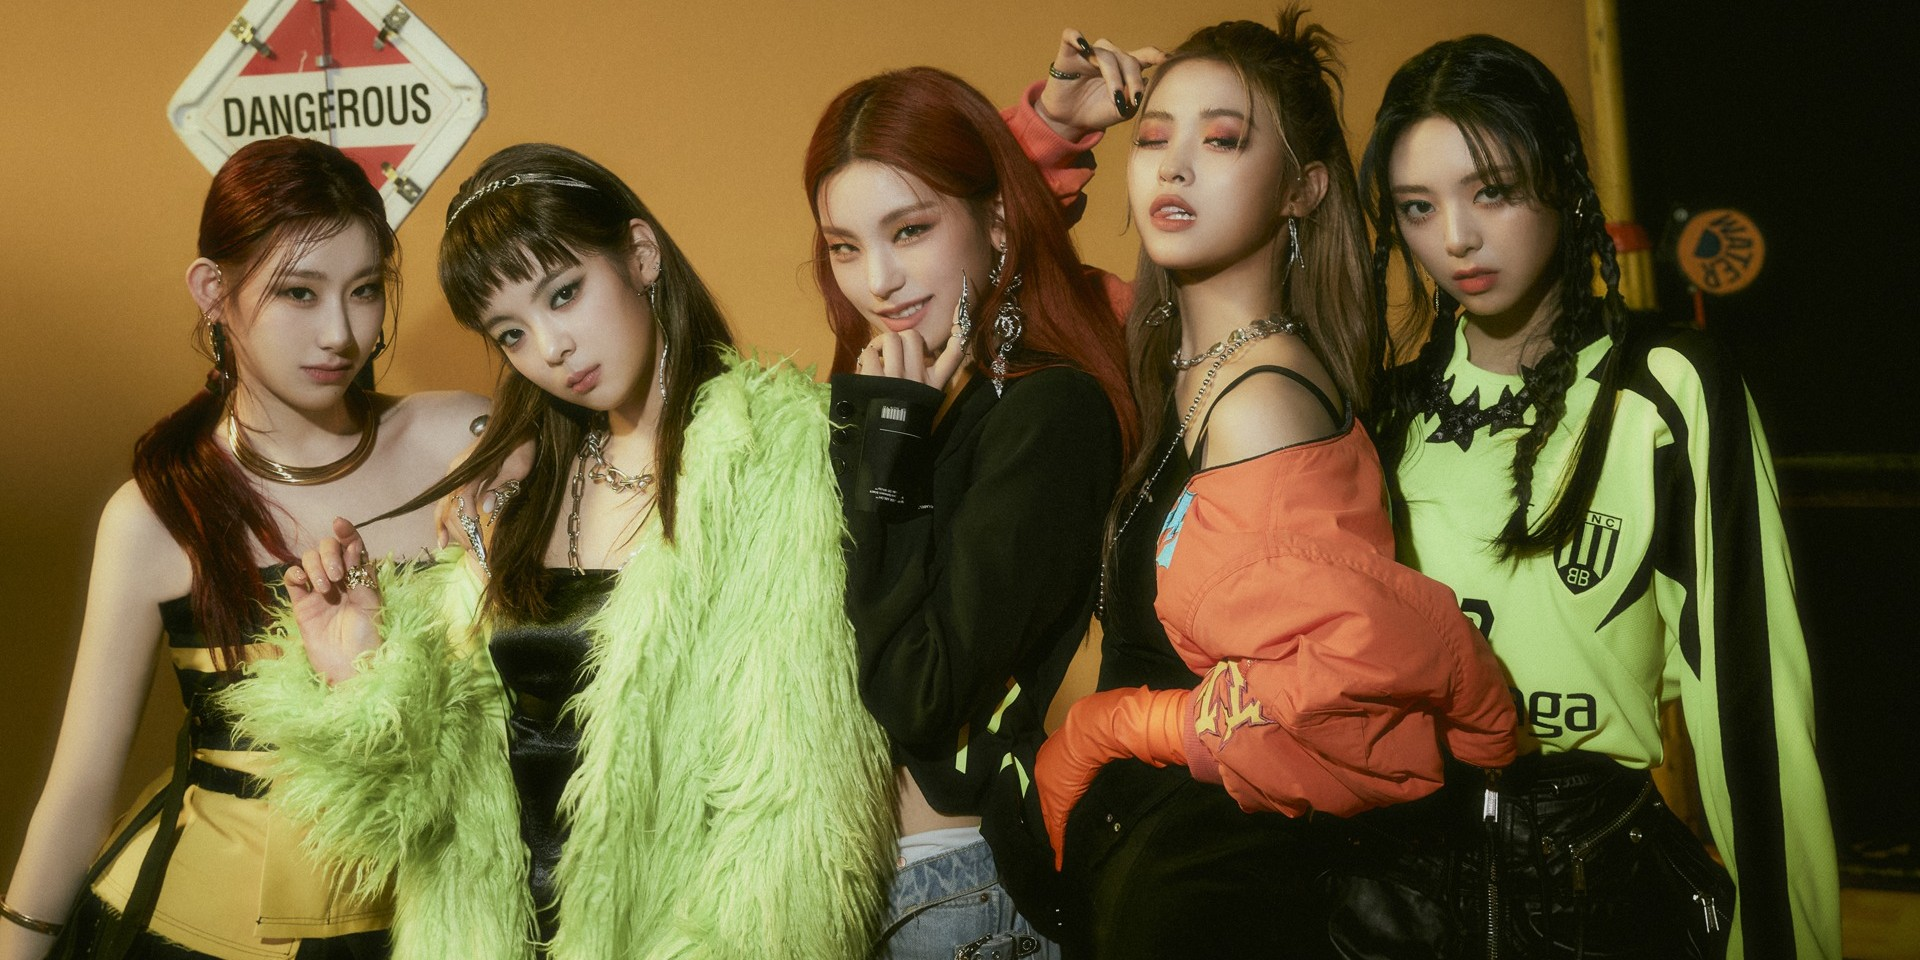 ITZY announce their return with their explosive new mini-album 'GUESS WHO' — listen